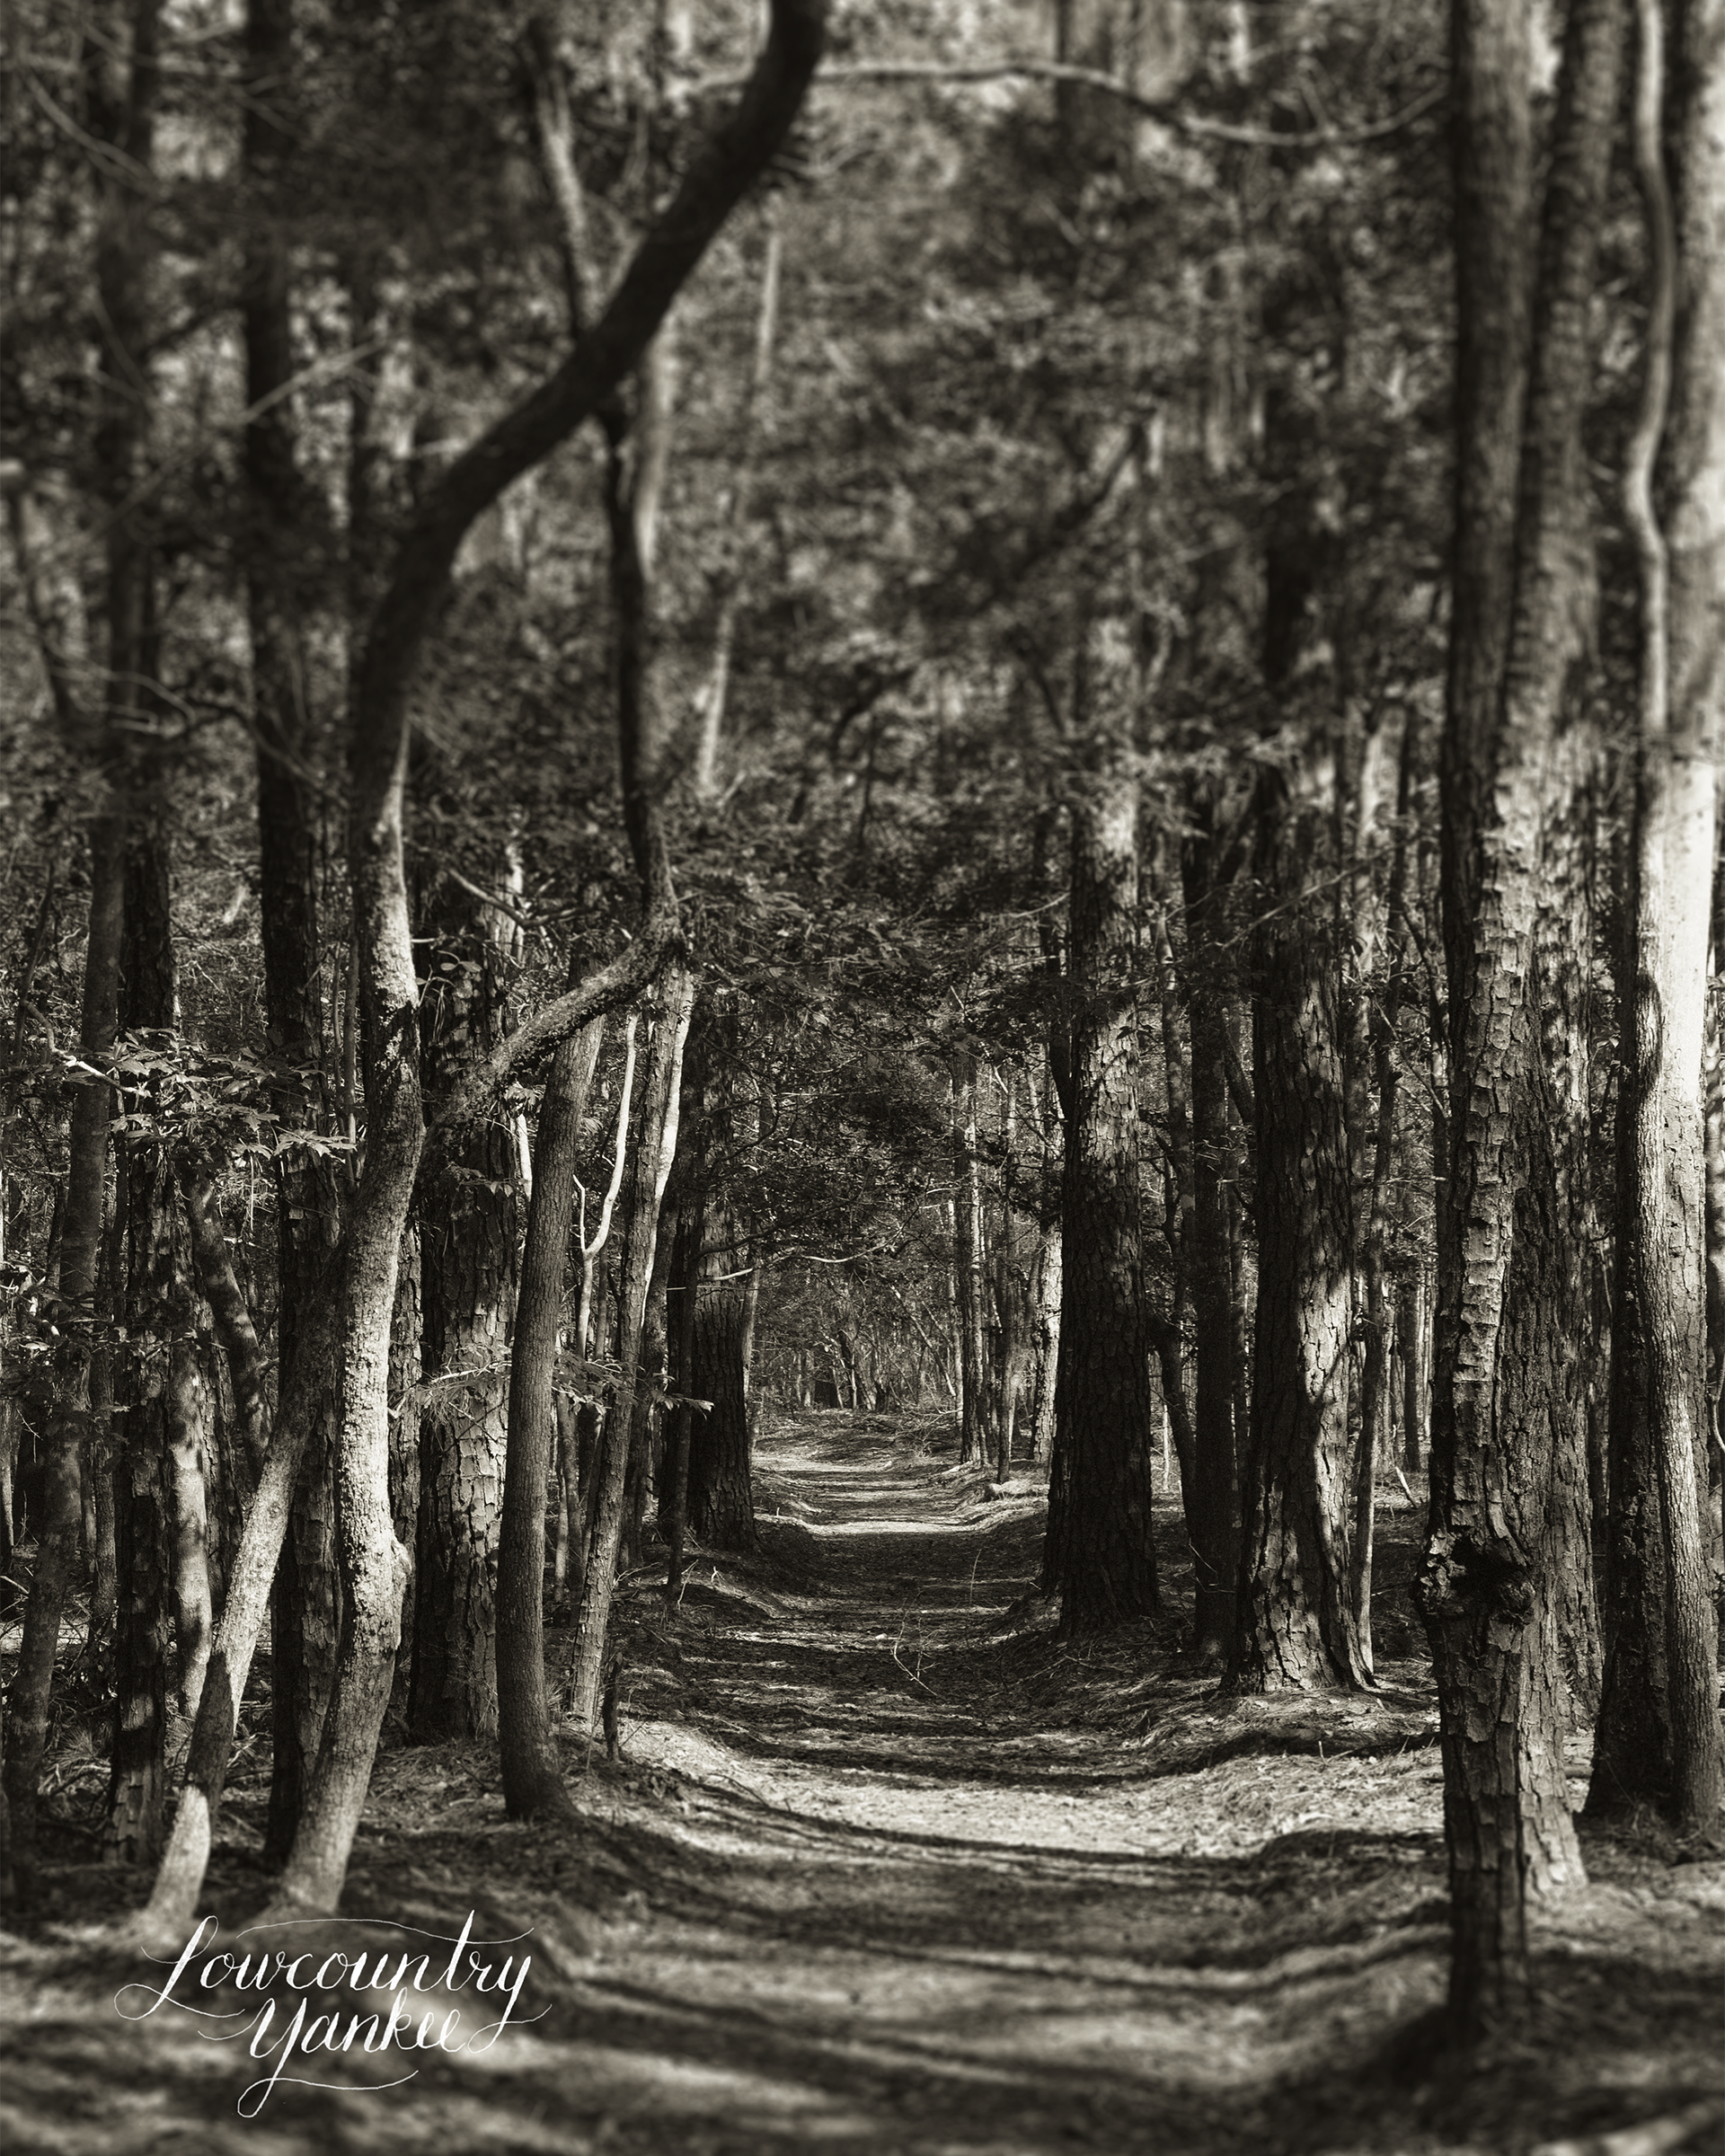 A well-worn path through the woods.